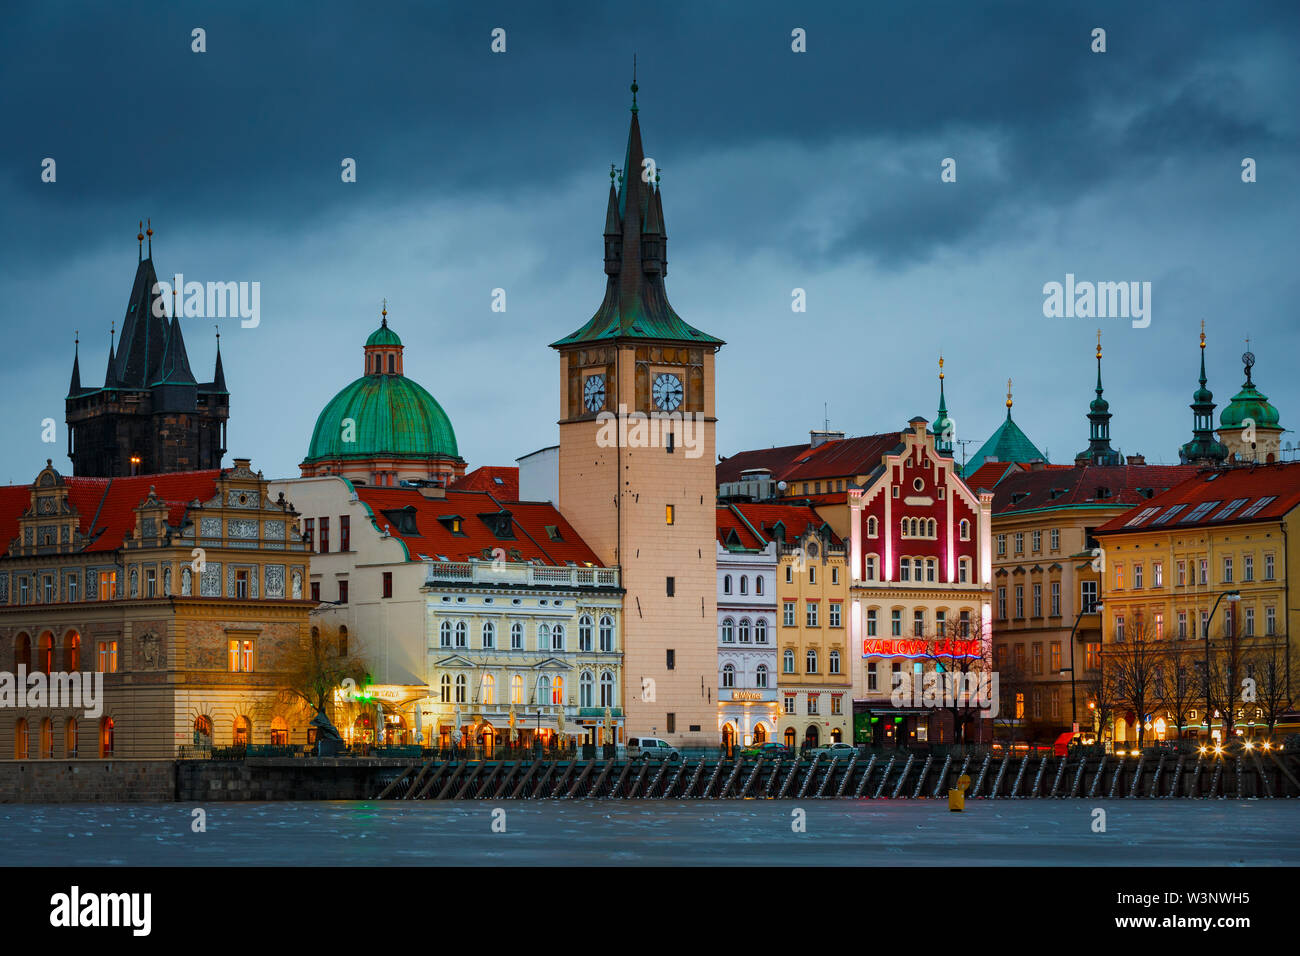 Prague, Czech Republic - March 14, 2019: Evening view of the historical city centre of Prague from Strelecky island. - Stock Image